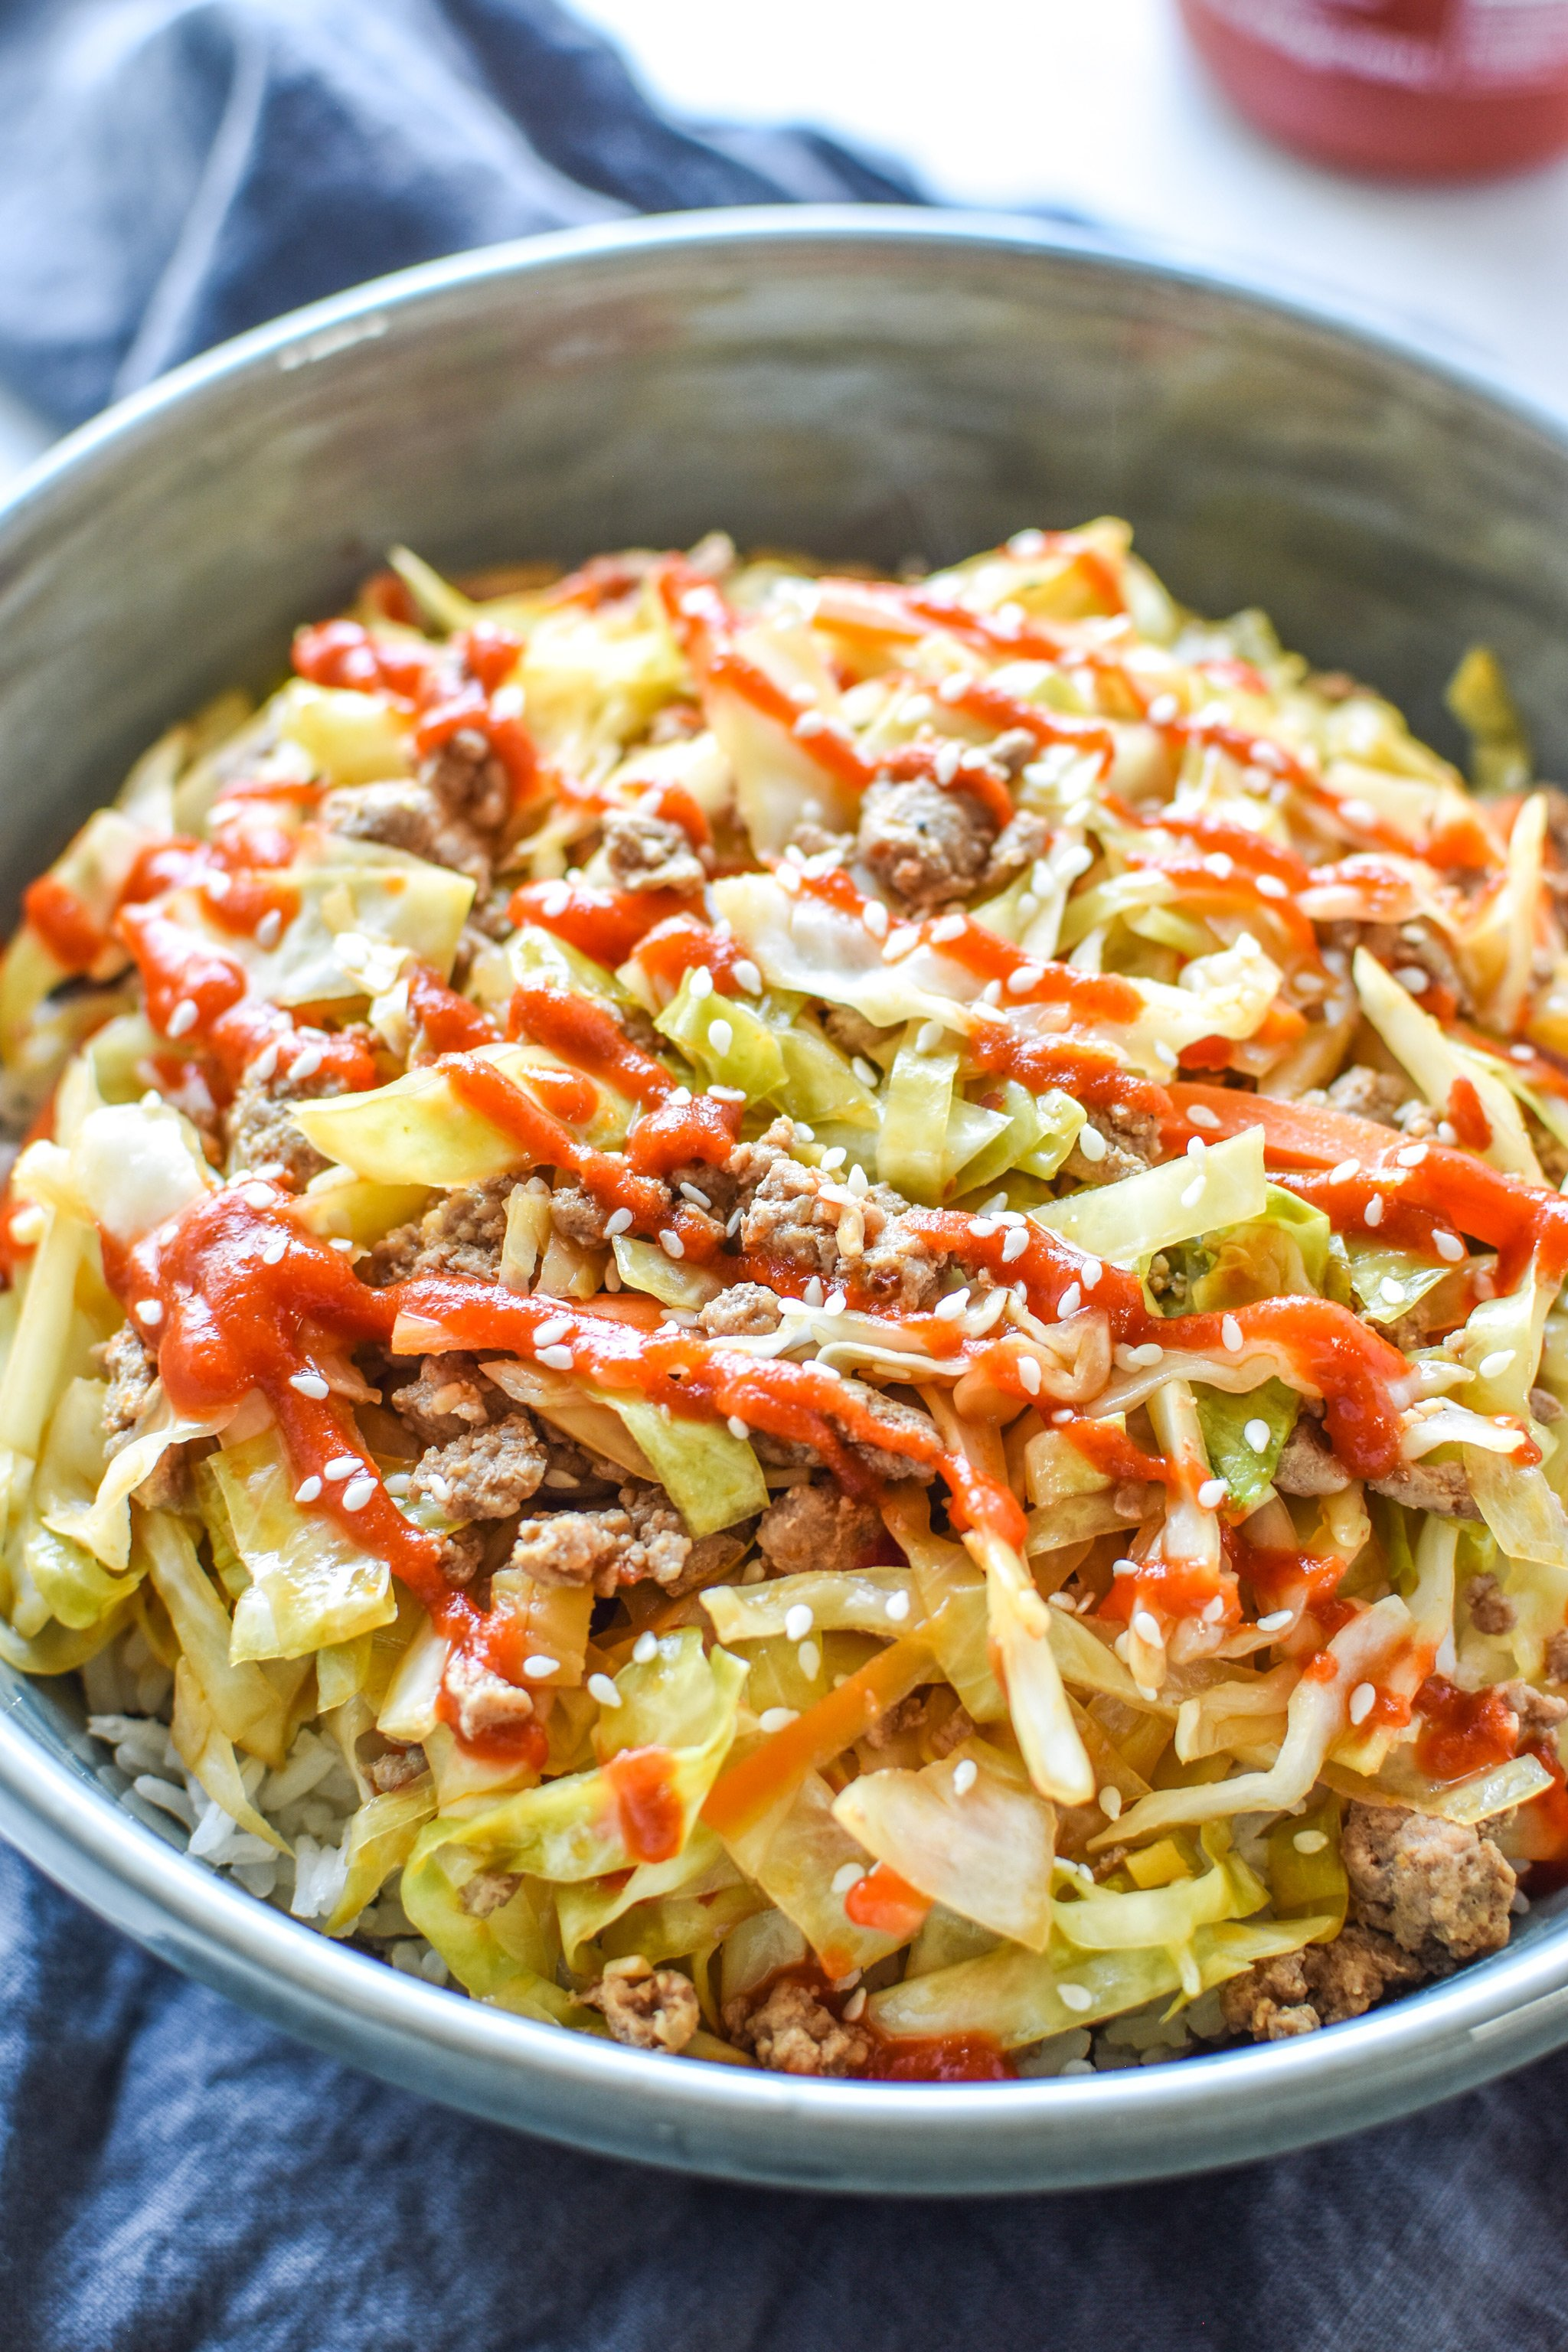 A bowl of spicy ground turkey cabbage stir fry served over rice with sriracha on top.